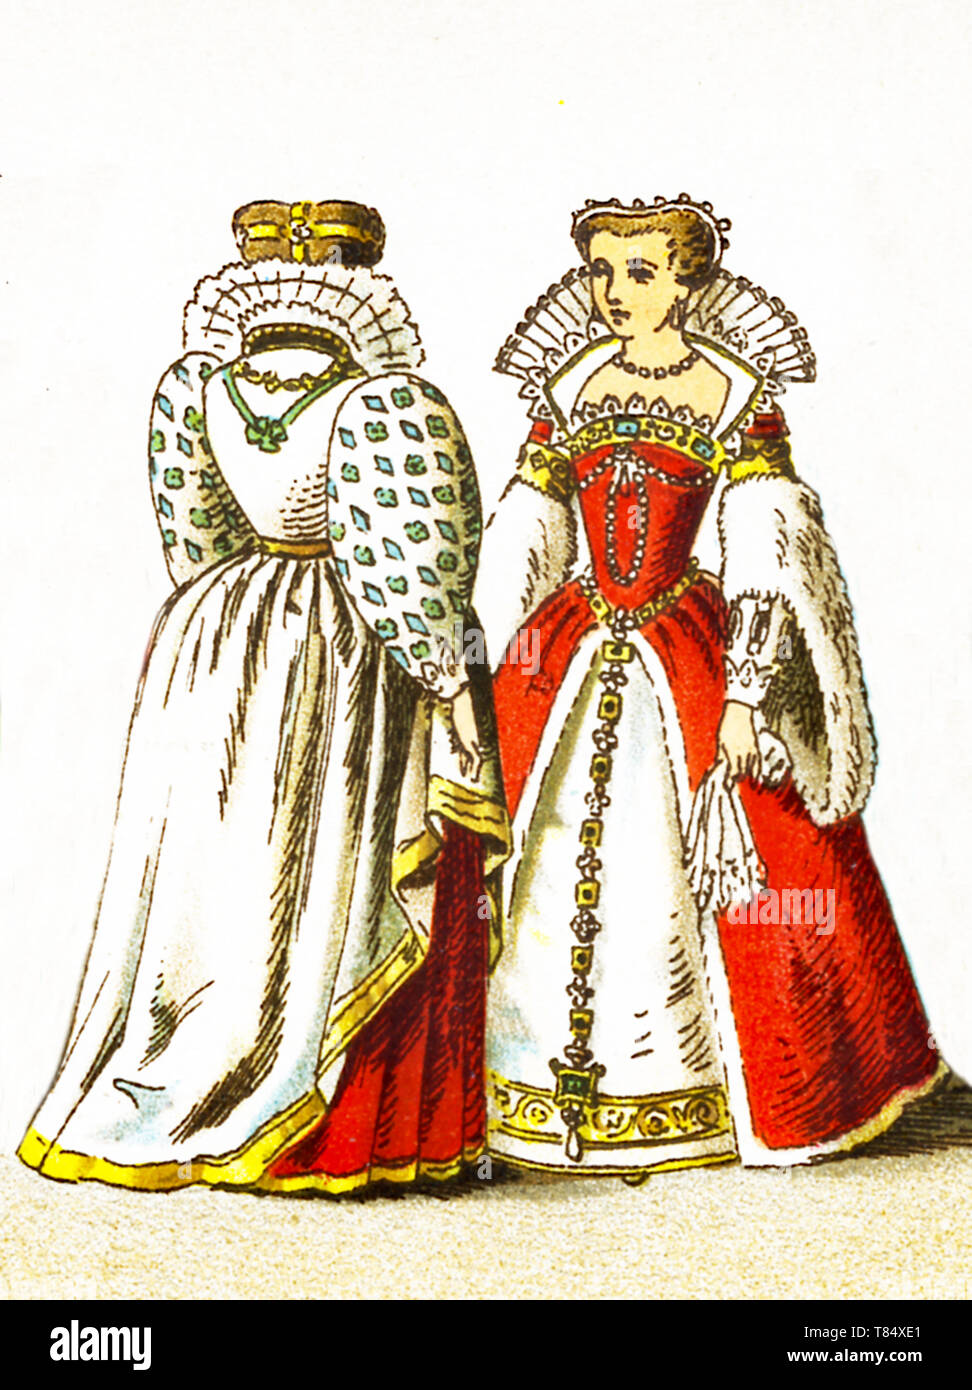 The figures represented here are French people between 1550 and 1600. They are, from left to right: a court costumes worn by a noble lady at the time and Louisa of Lorraine the consort of Henry III. The illustration dates to 1882. - Stock Image